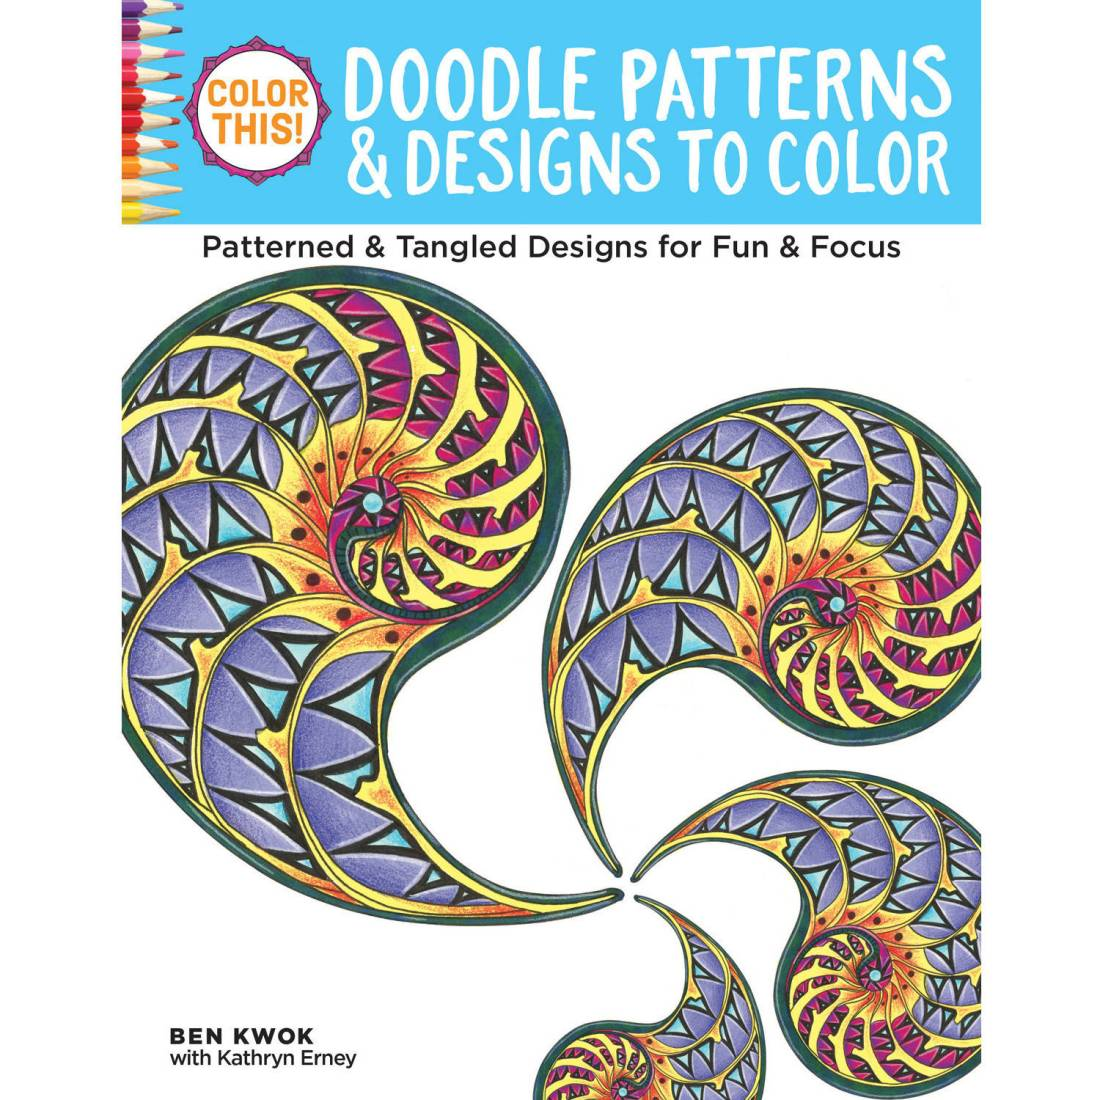 color this! doodle patterns and designs to color adult